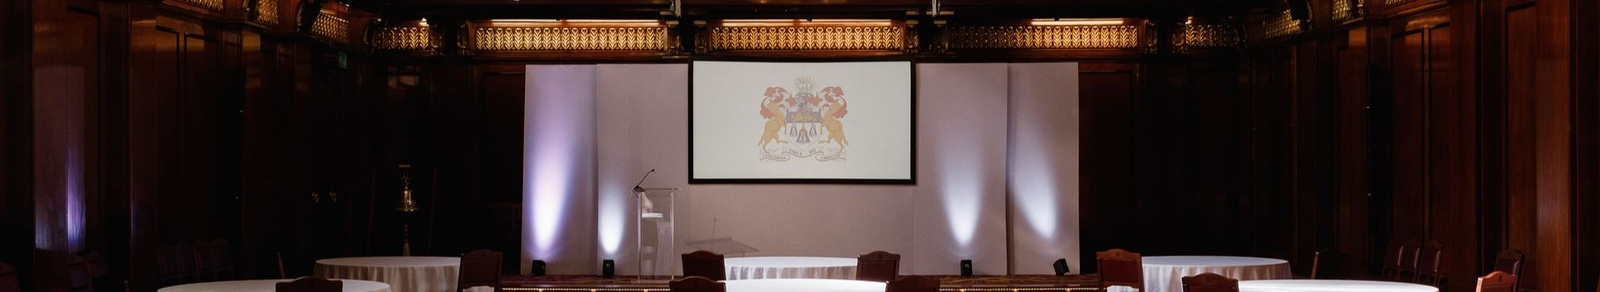 The Livery Academy Awards: Meet the Judges banner